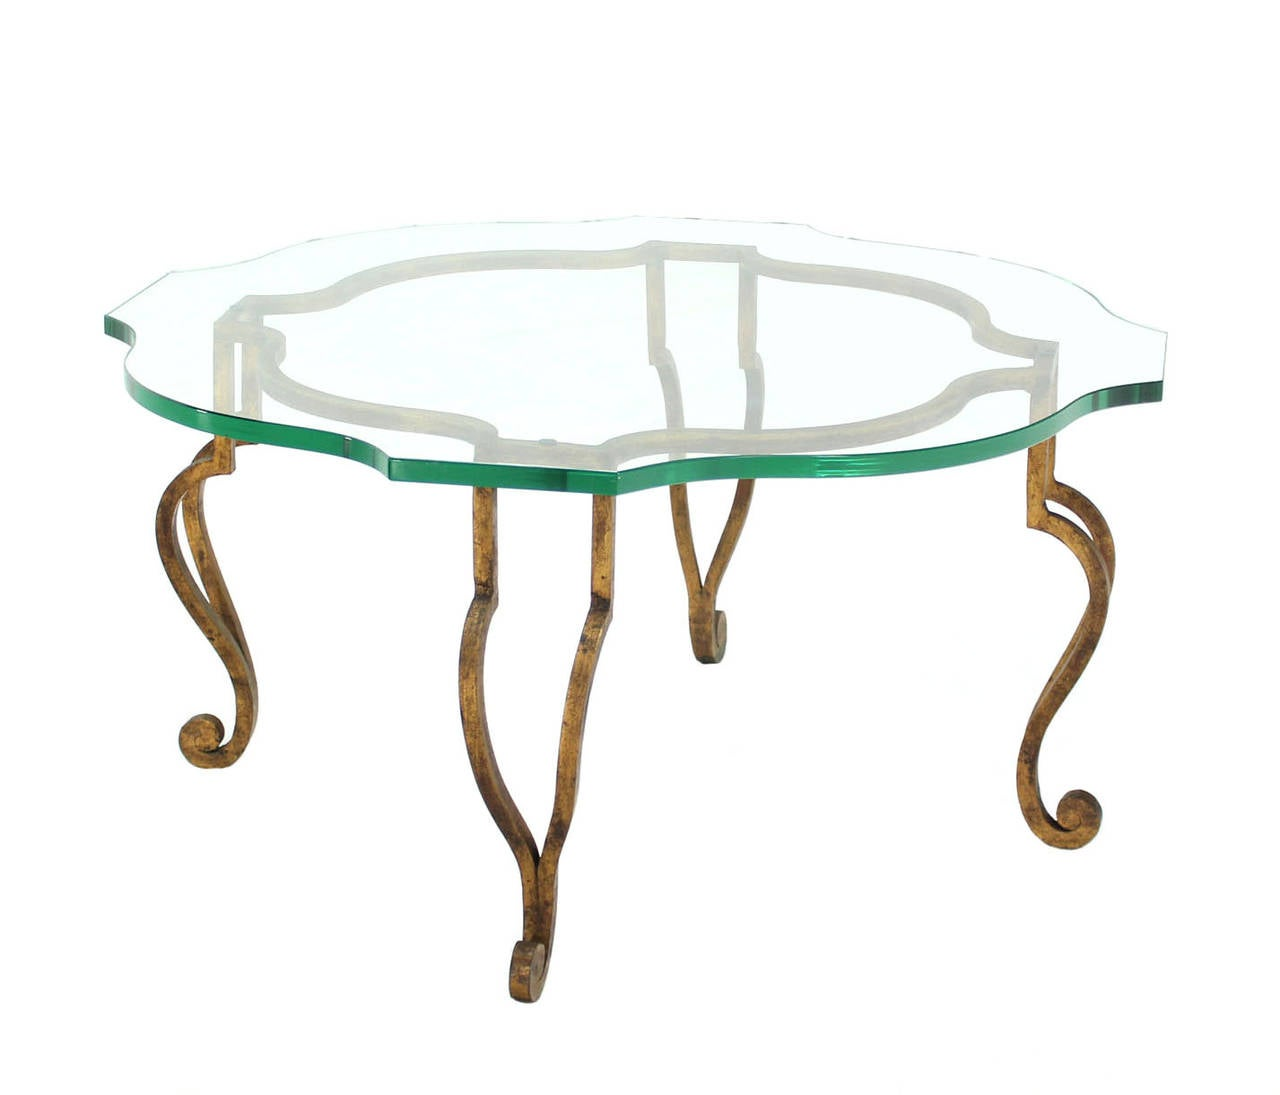 Figural Wrought Iron Base Coffee Table With Thick Glass Top For Sale At 1stdibs